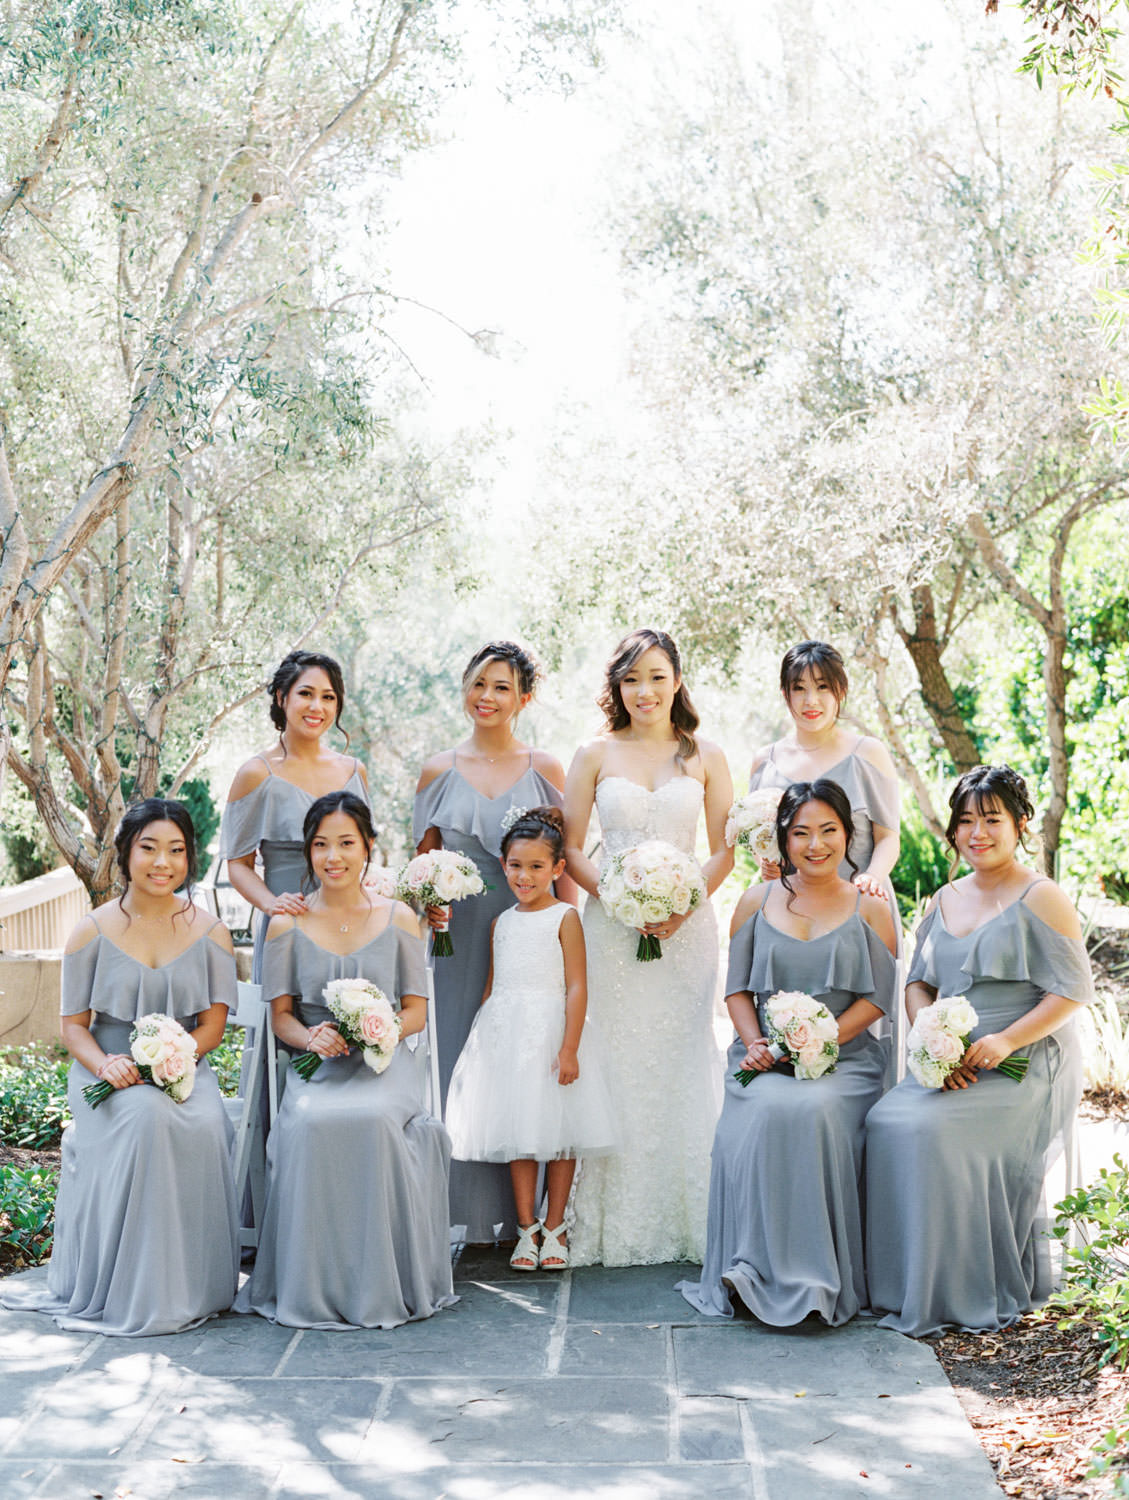 Bridal party portrait with bridesmaids in grey cut out sleeve gowns. Bride in a Martina Liana gown from the White Flower Bridal Boutique. Rancho Bernardo Inn wedding. Film photo by Cavin Elizabeth Photography